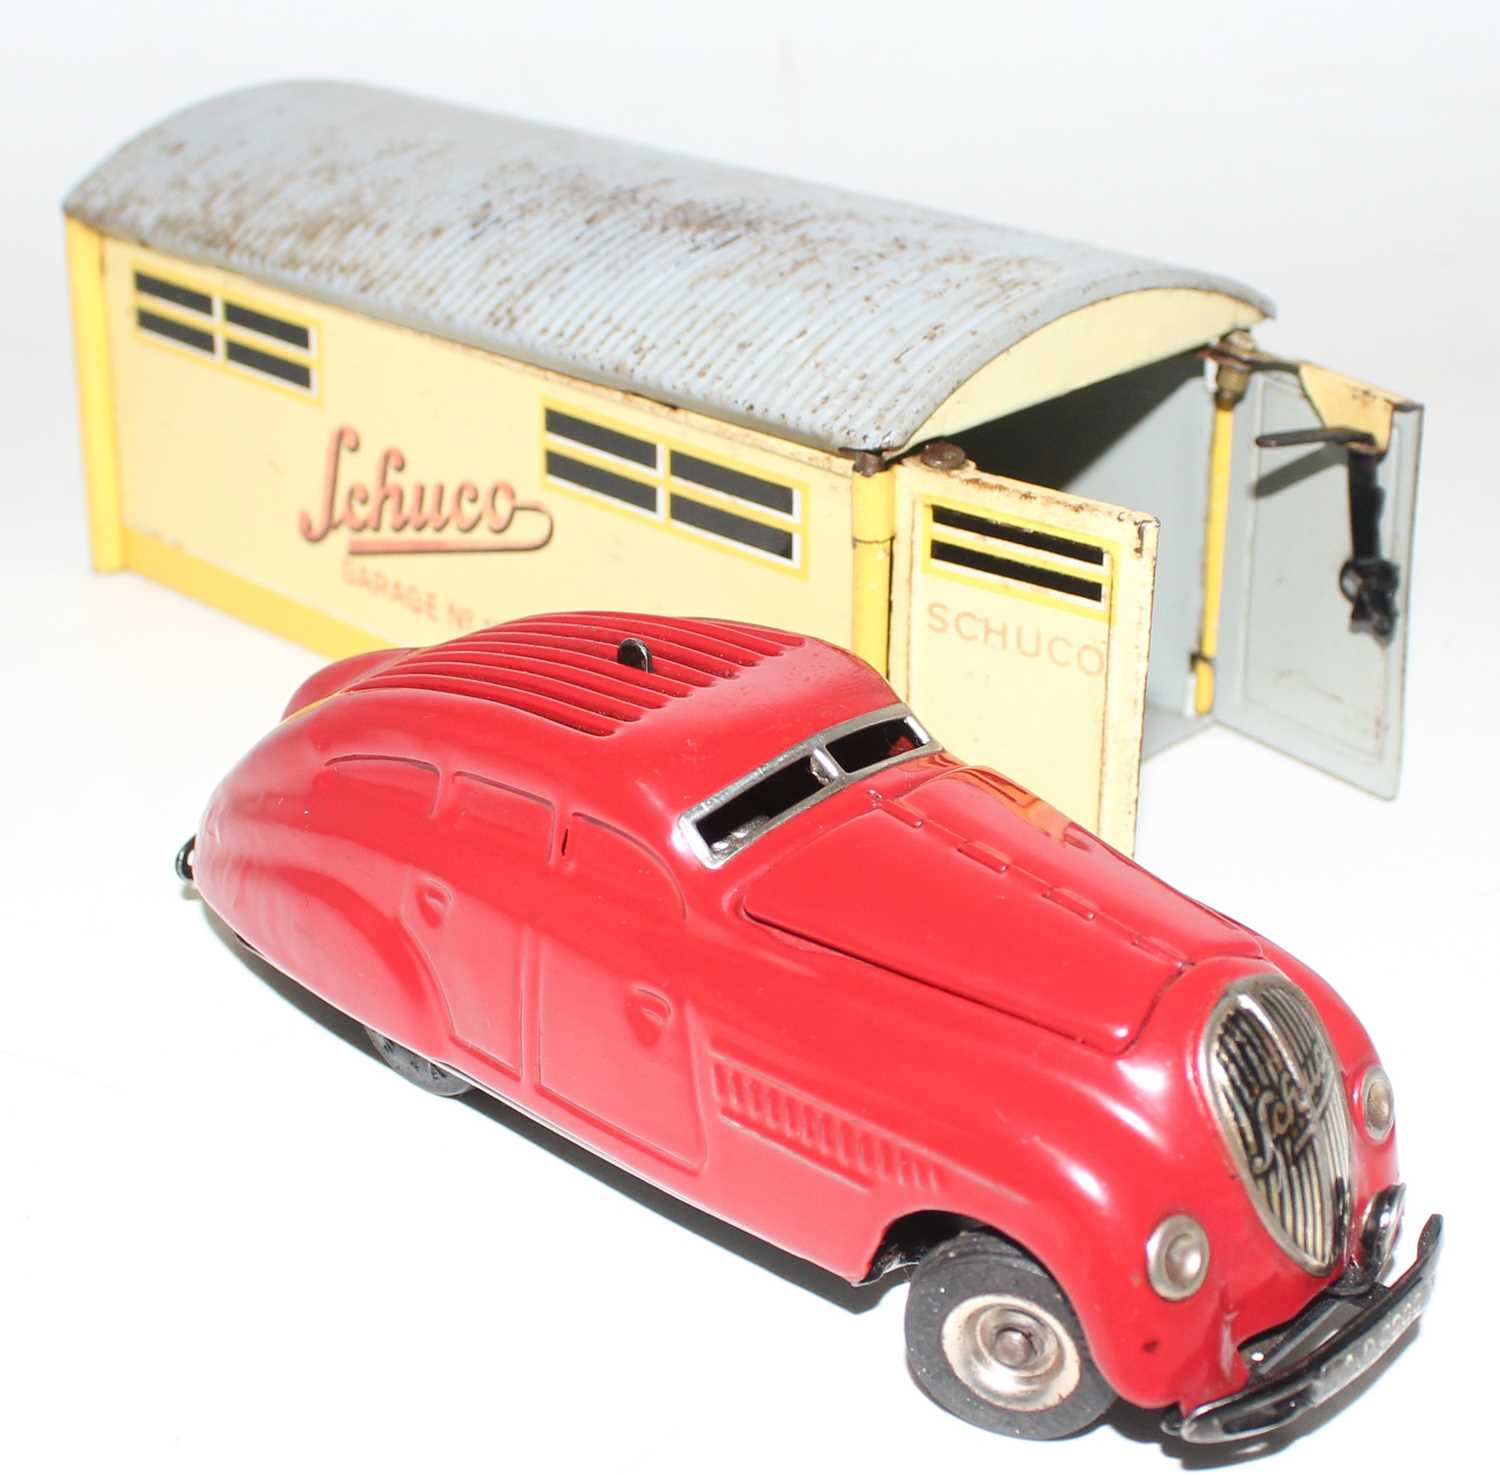 "A Schuco vintage tinplate clockwork car in a garage ""Kommando Anno 2000"" circa mid 40s complete with - Image 3 of 4"